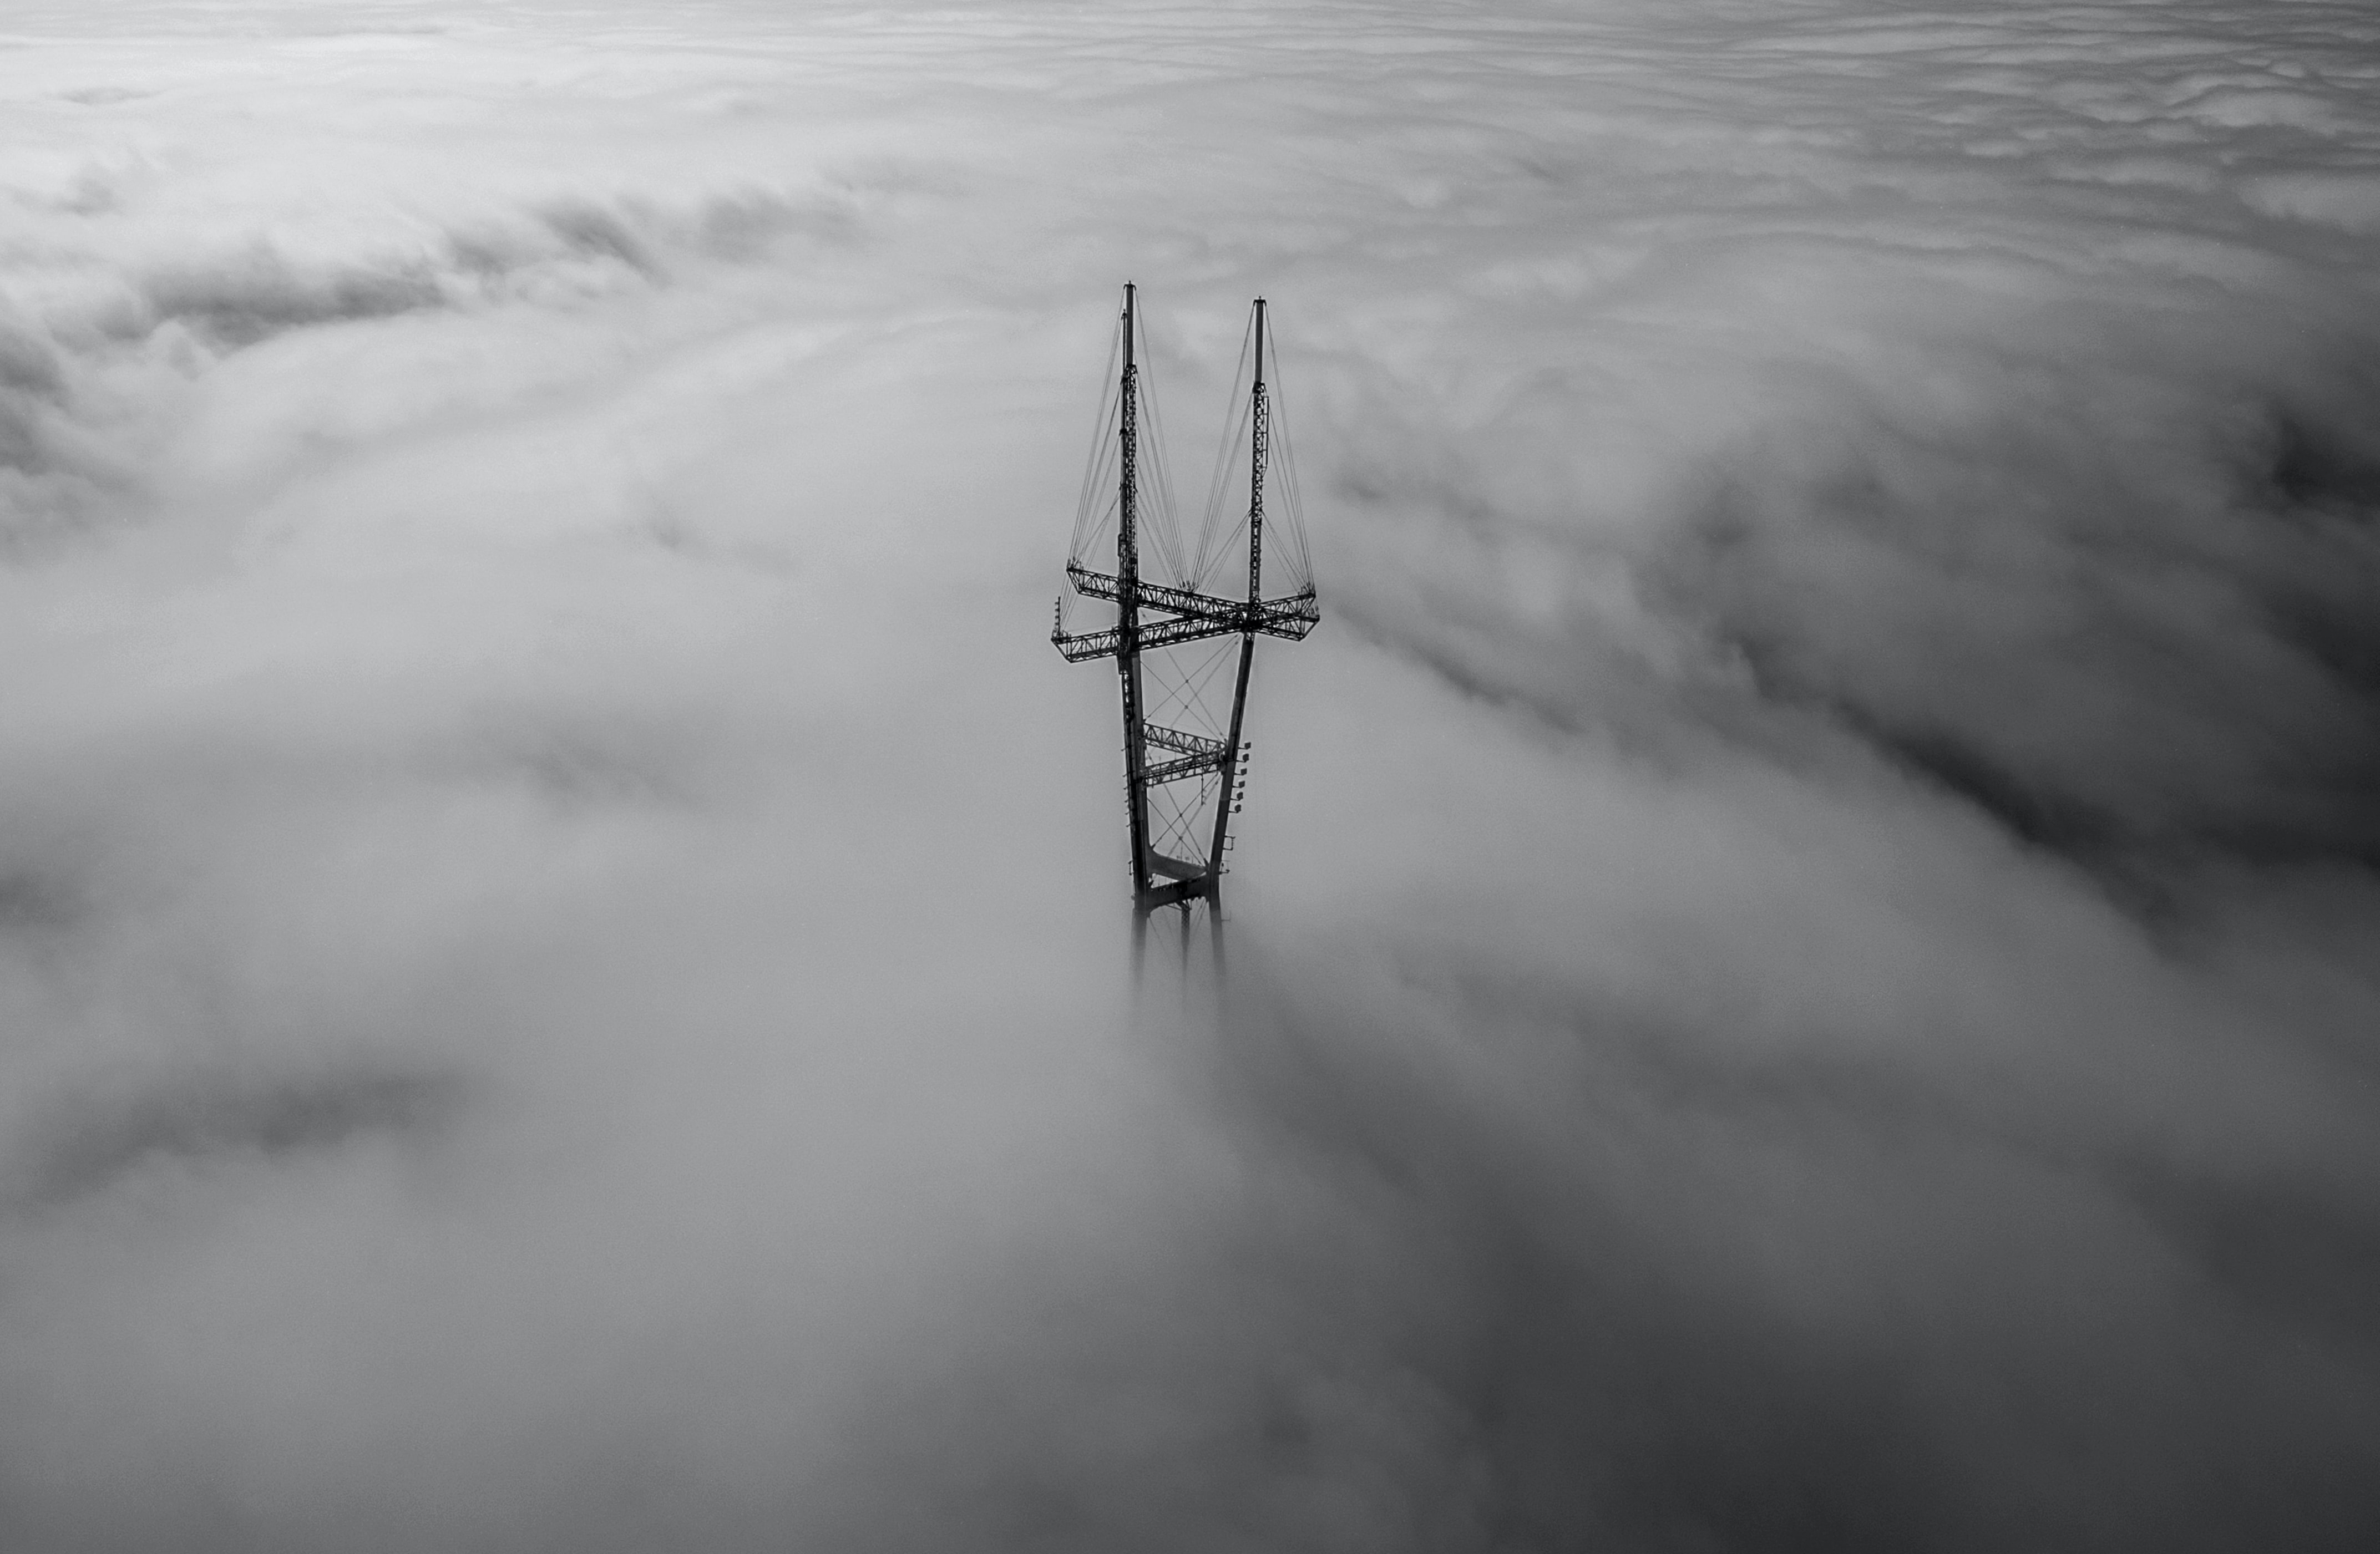 Black and white drone shot of Sutro Tower emerging from thick clouds